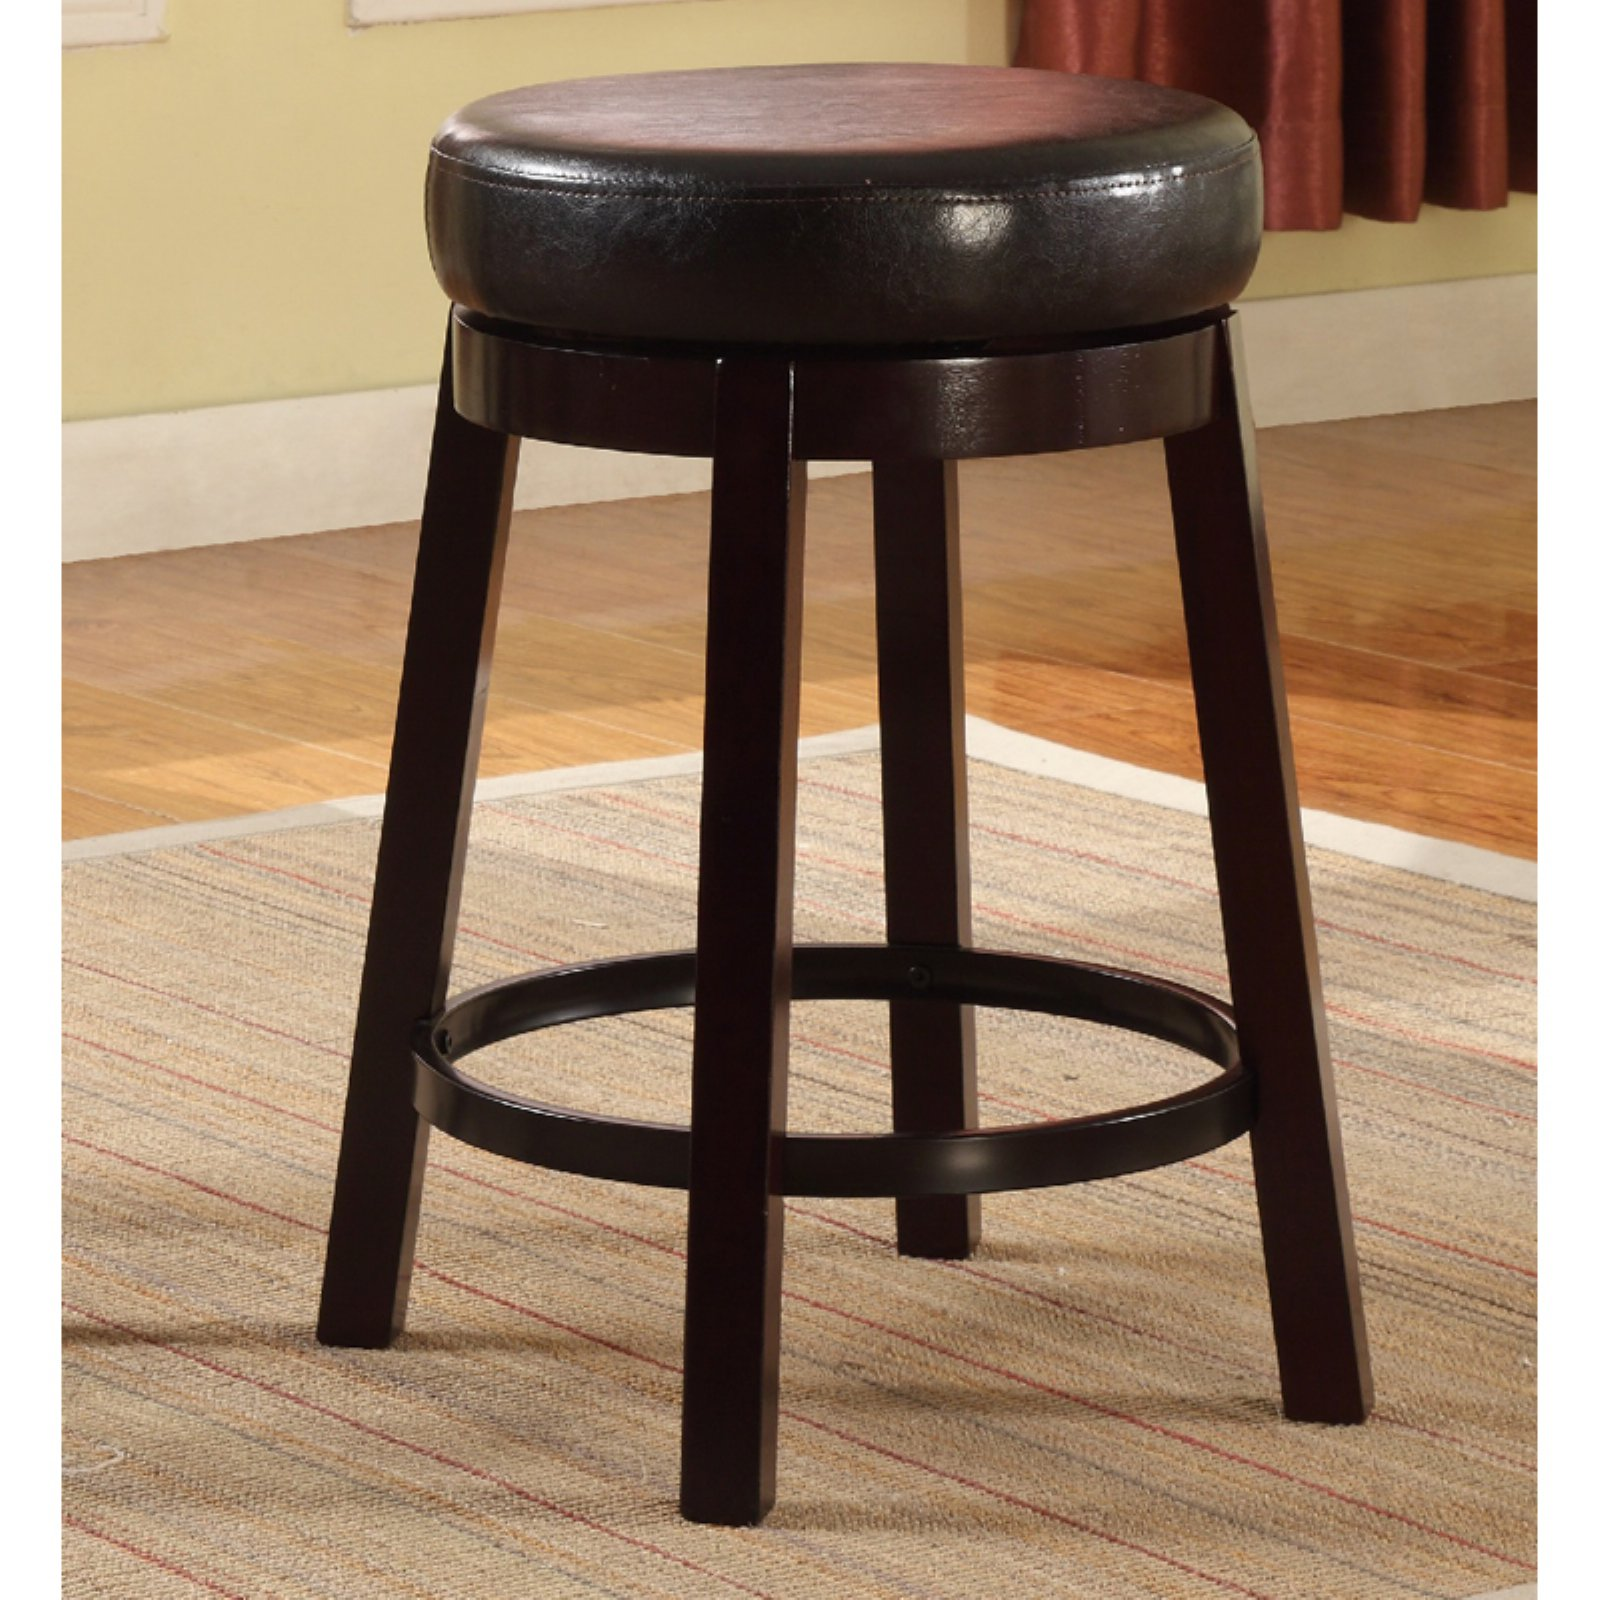 Roundhill Wooden Swivel Barstools, Counter Height, Set of 2